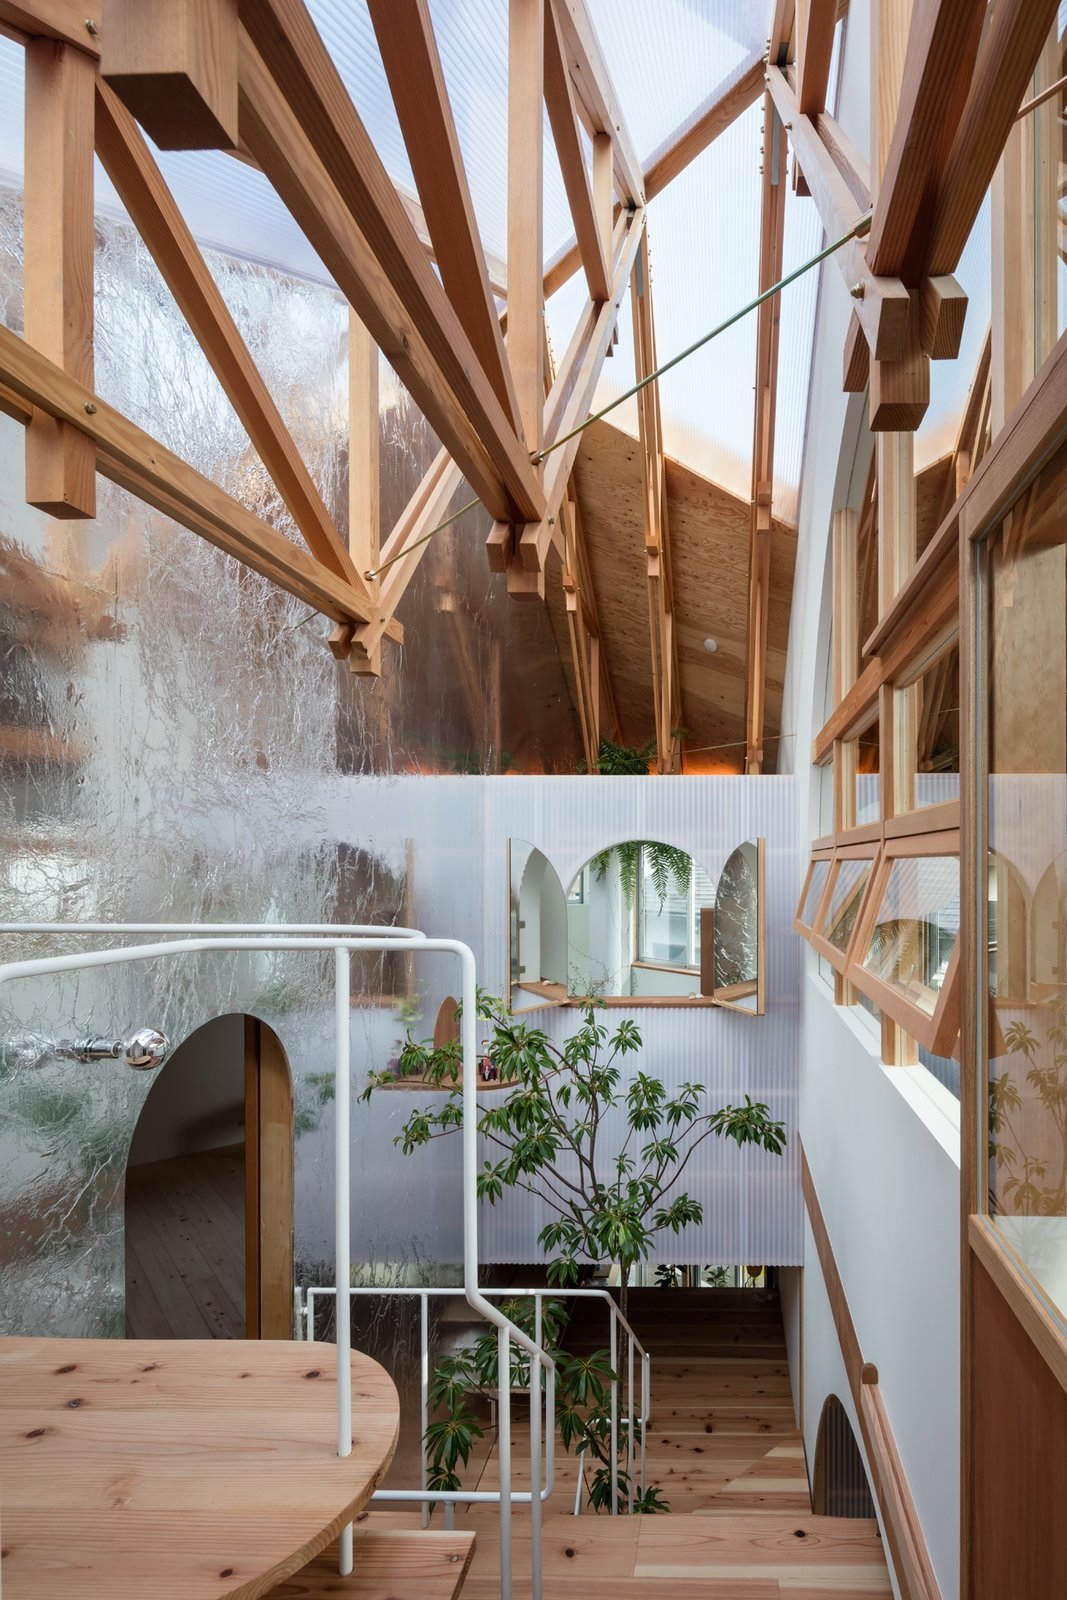 Staircase and Wood Tread A wooden truss structure supports the beam of the large roof and the exterior walls.  Photo 11 of 17 in This Whimsical Home in Japan Encourages Play and Exploration